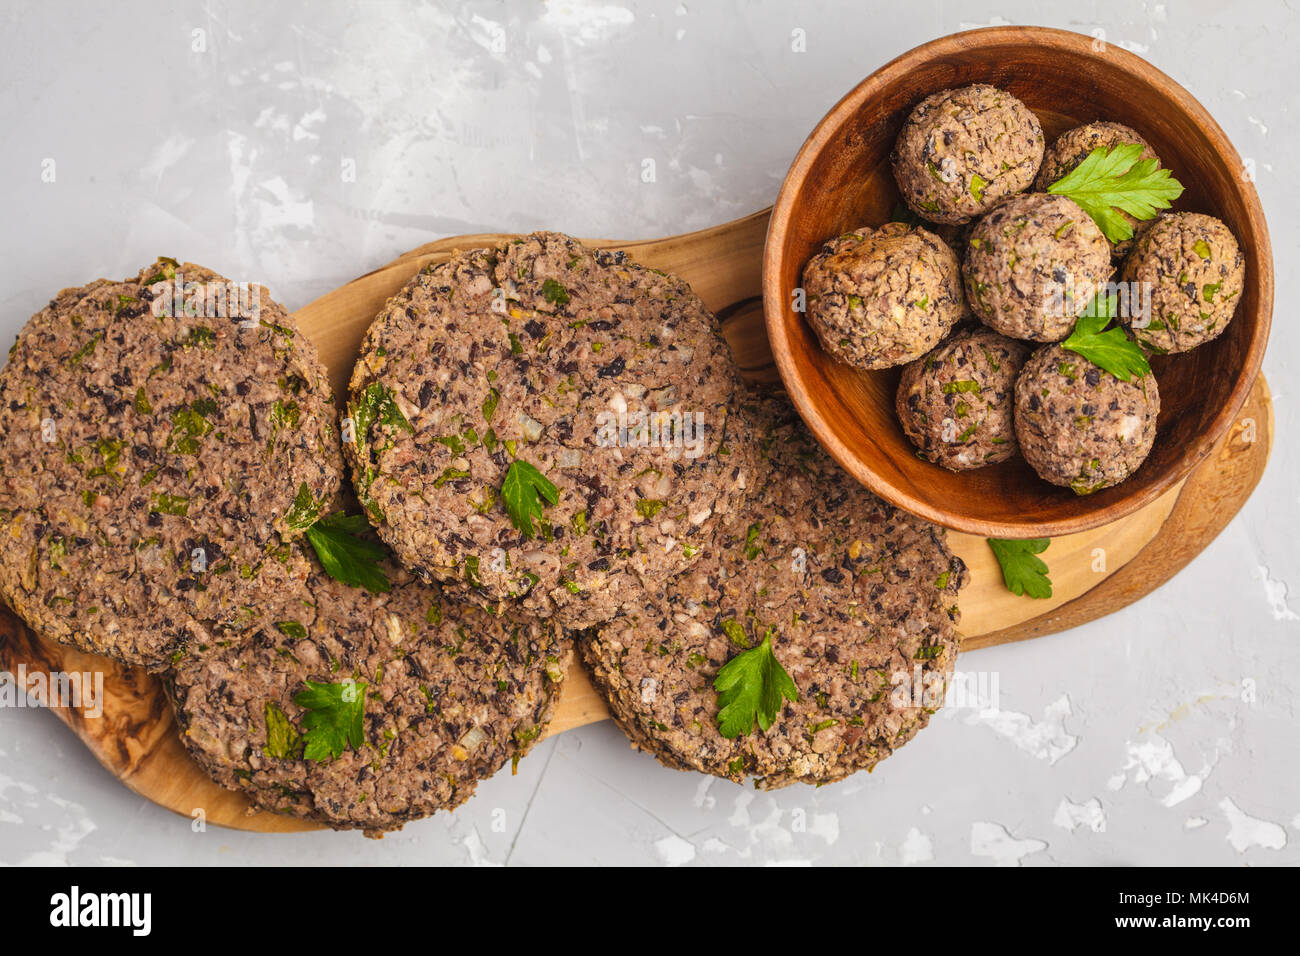 Vegan beans burgers (cutlets) and meatballs with parsley on a wooden board, copy space. Healthy vegan food concept. - Stock Image